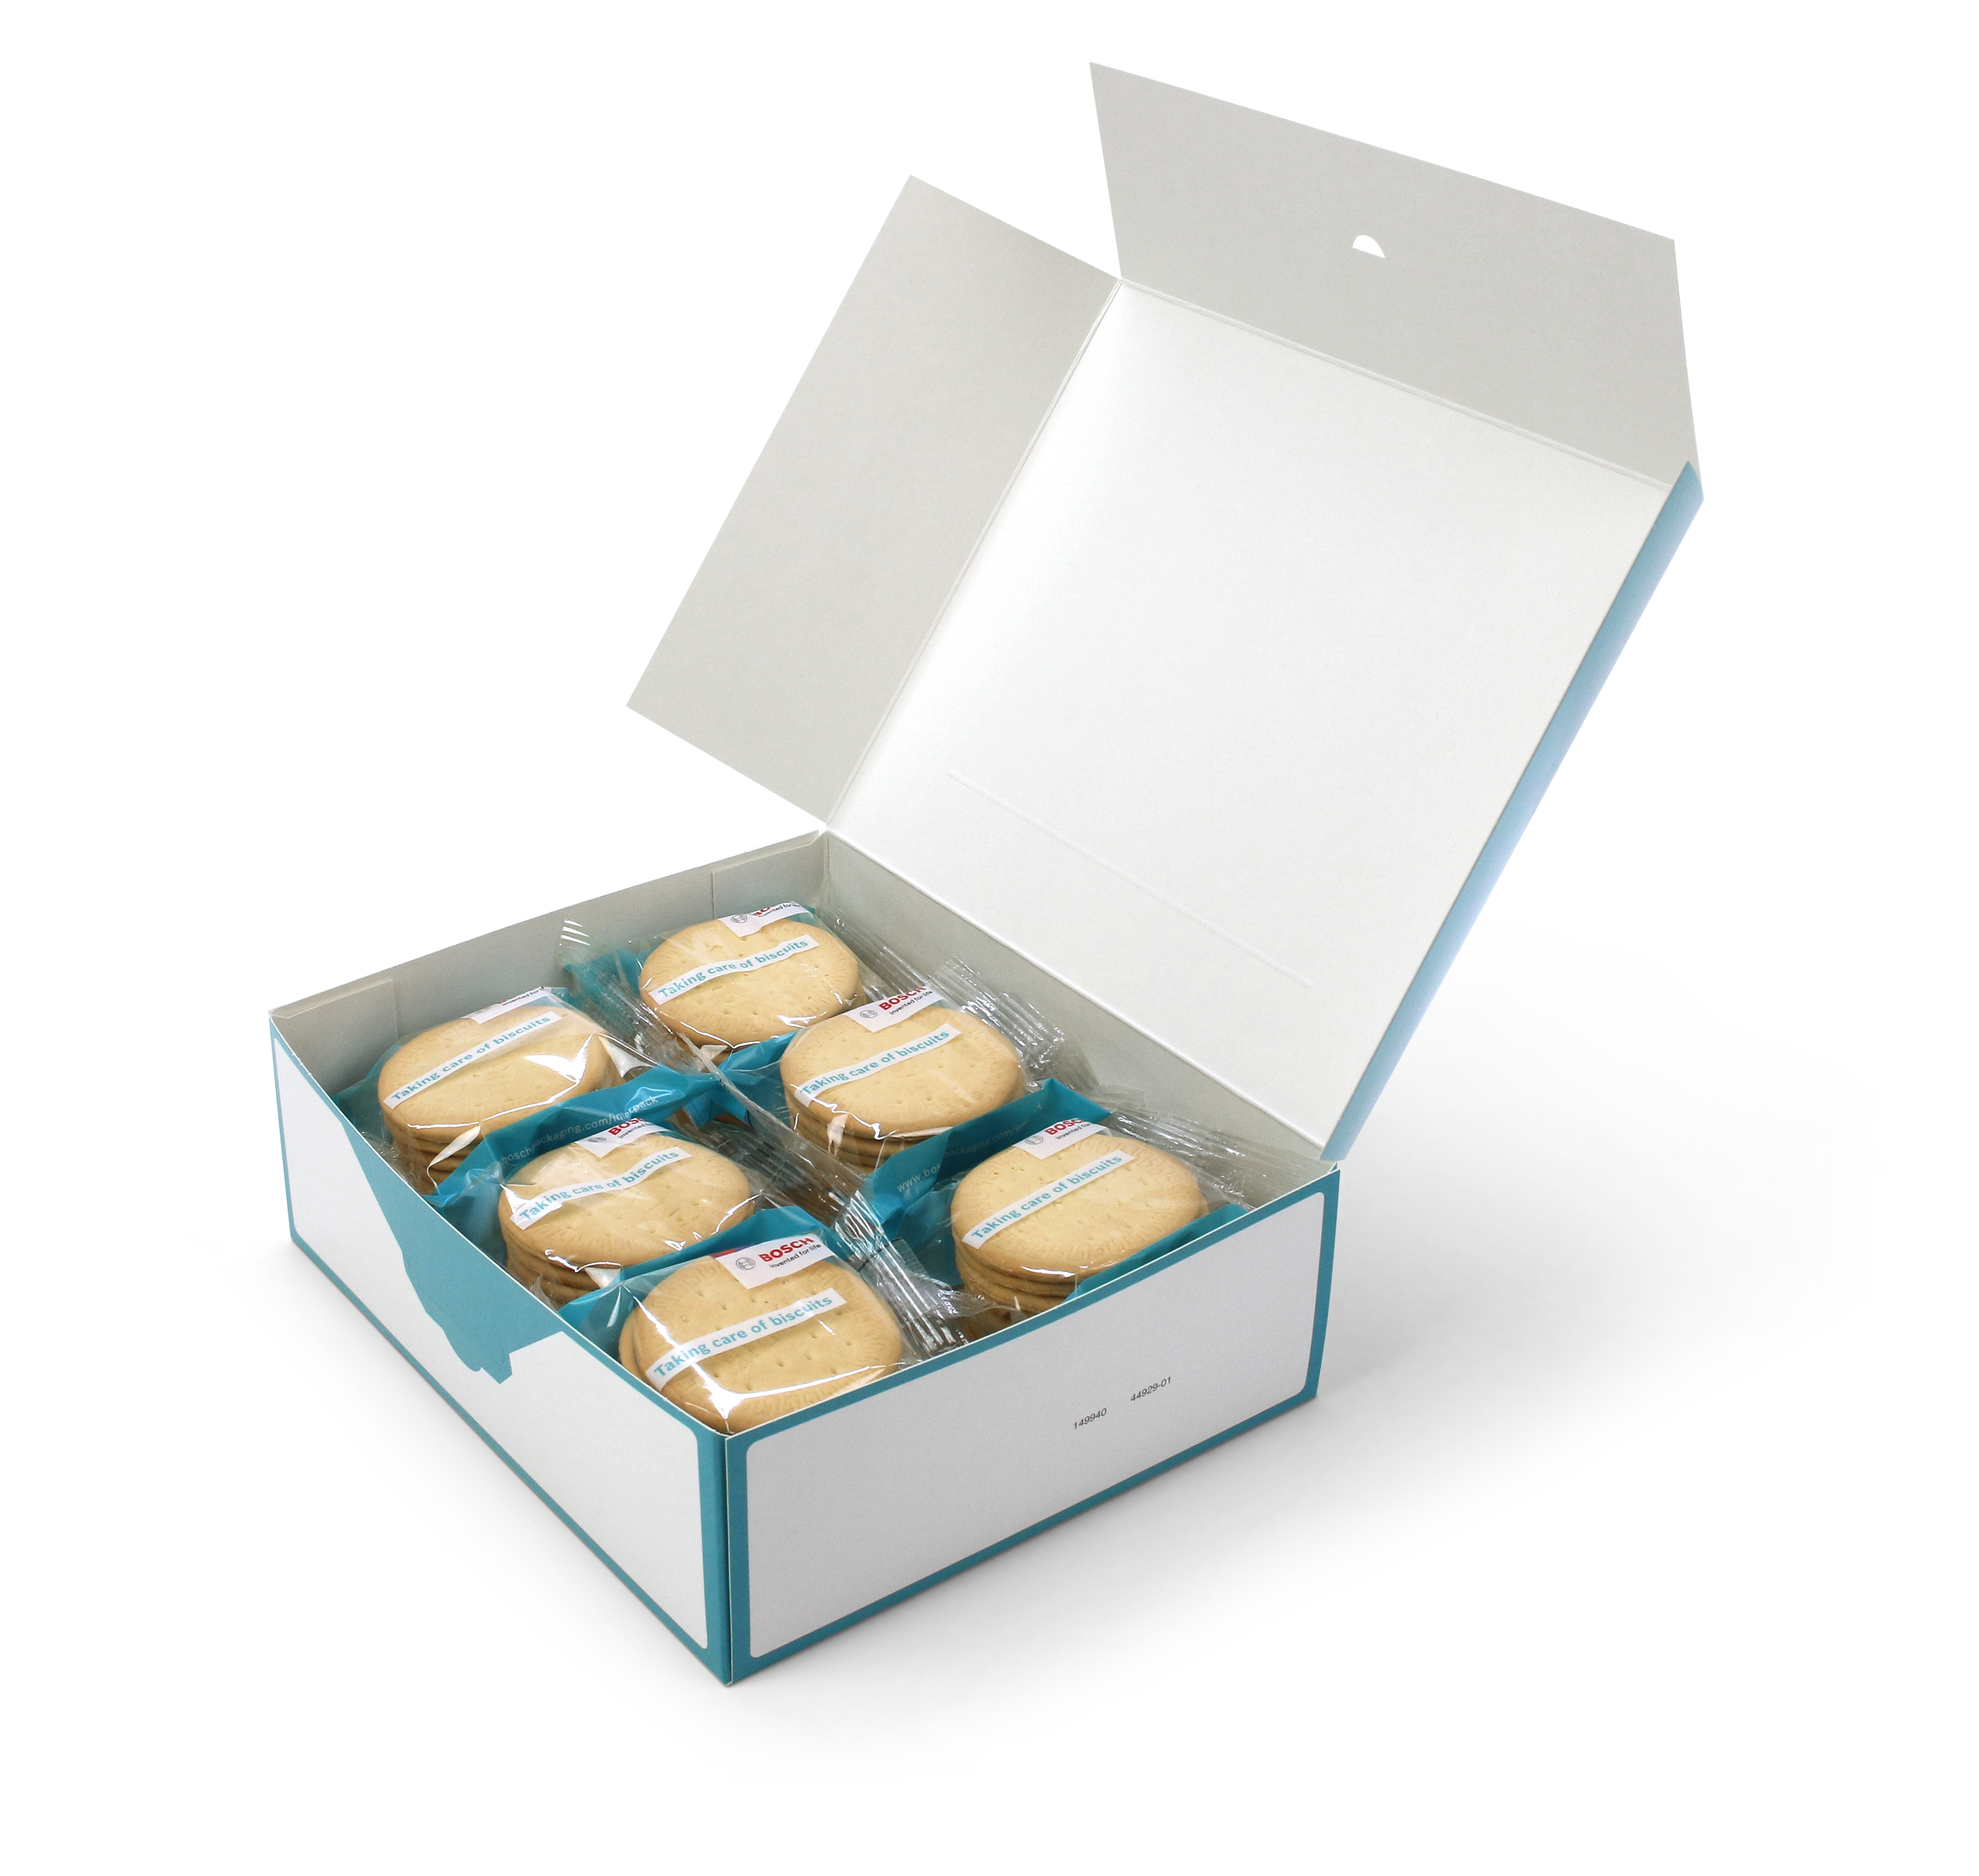 New Biscuit-on-pile packaging system